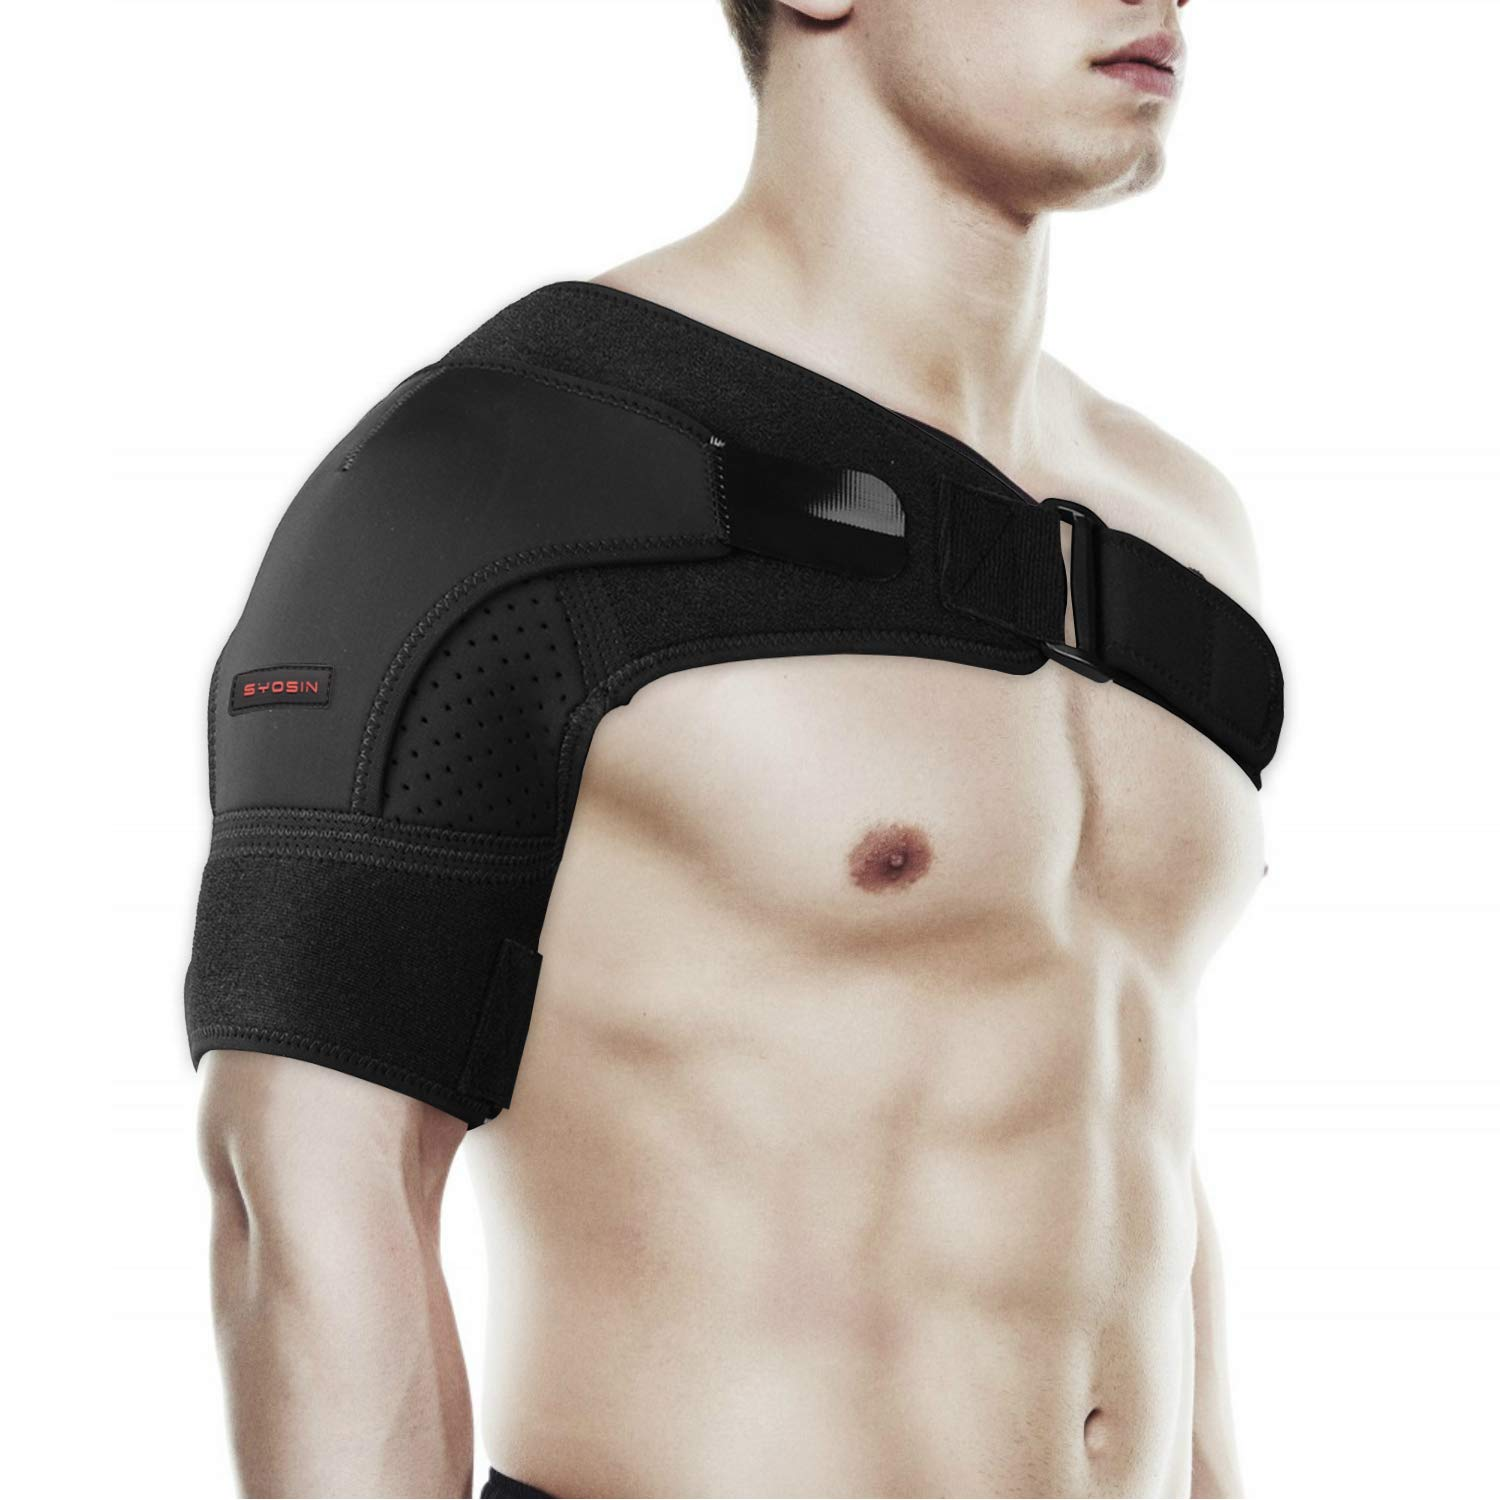 Shoulder Brace by SYOSIN - Rotator Cuff Support for Injury Prevention, Dislocated AC Joint, Labrum Tear, Tendonitis and Fracture - Shoulder Compression Sleeve with Pressure Pad for Men & Women